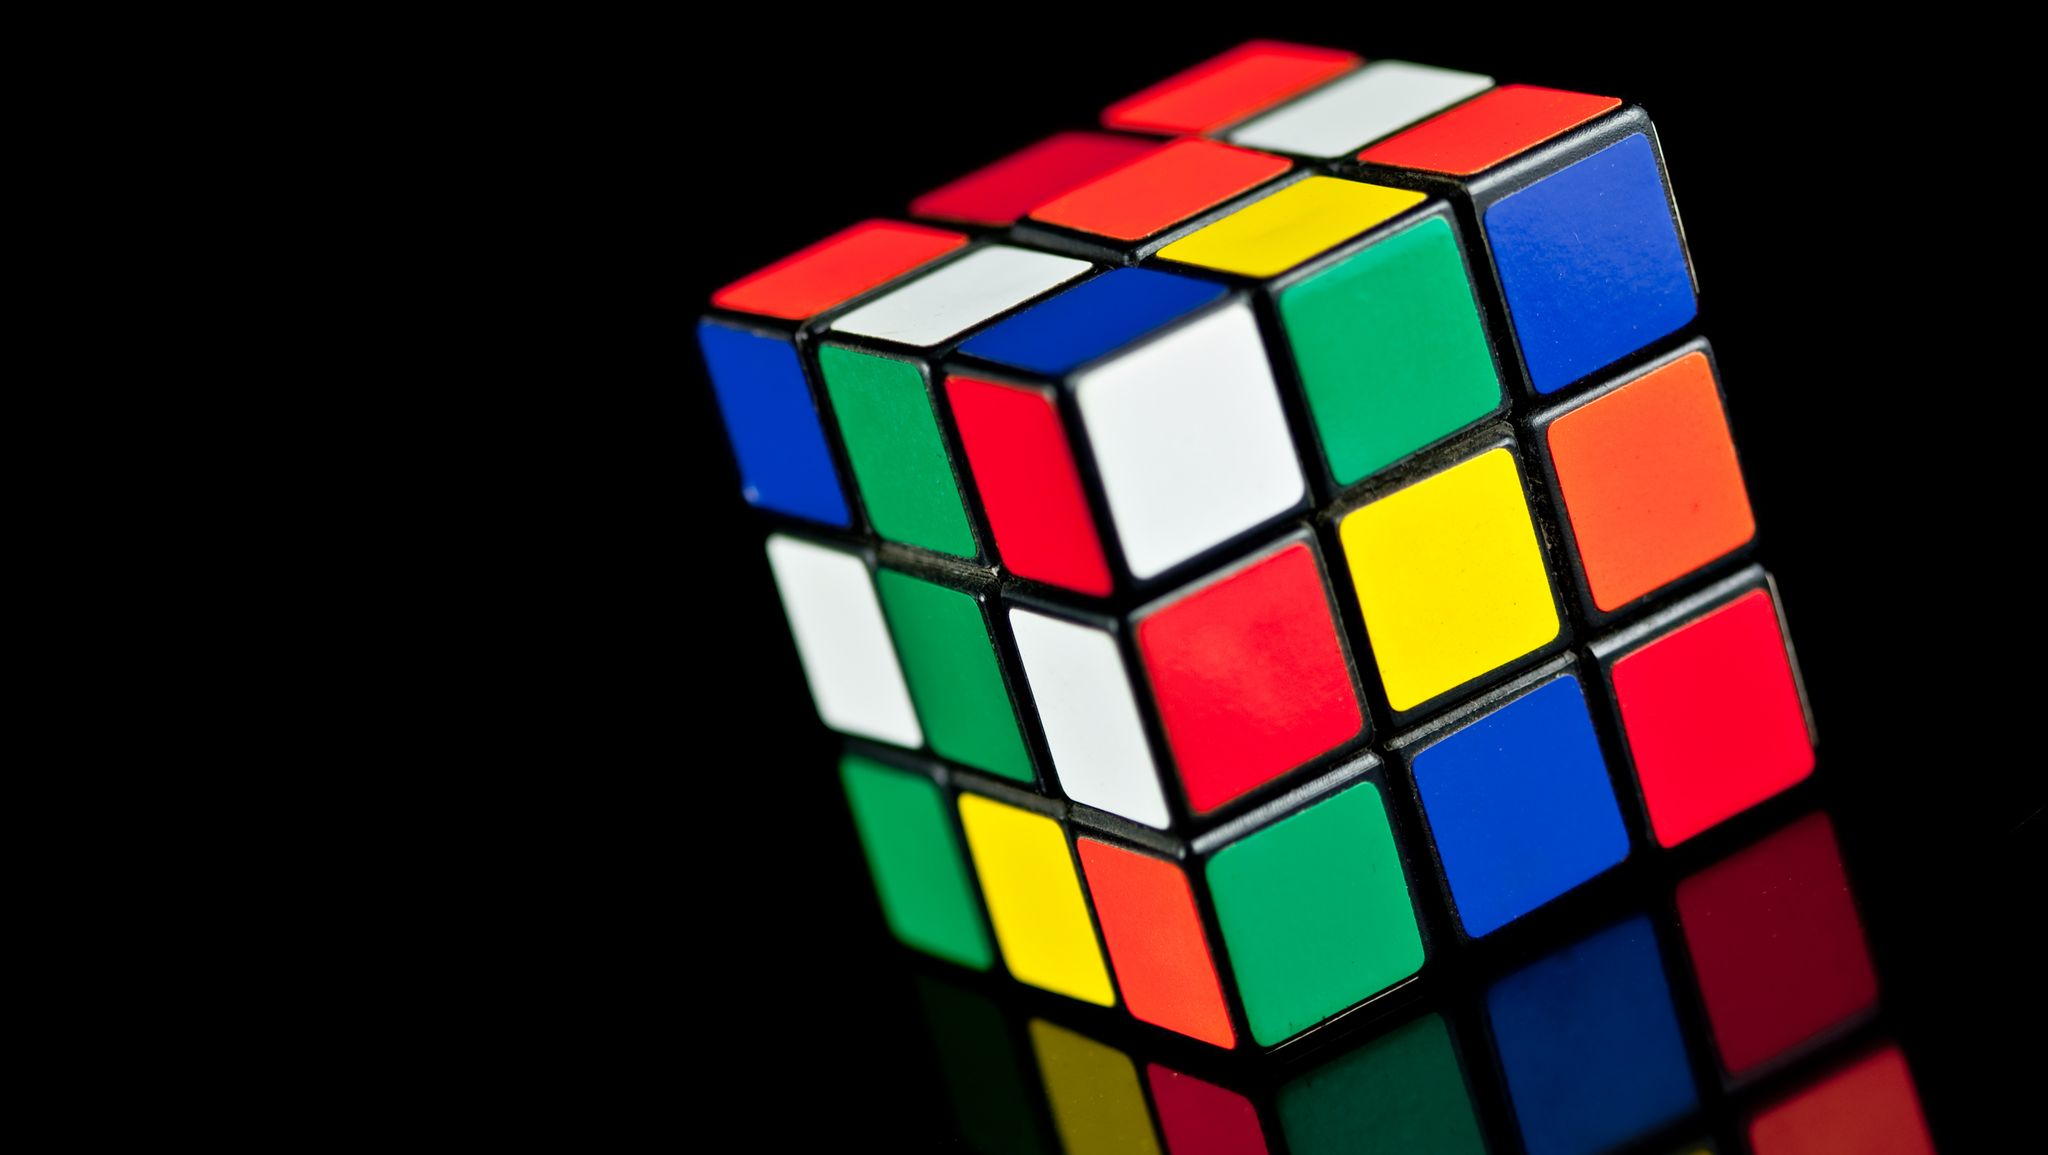 The Amazing Math Inside the Rubik's Cube